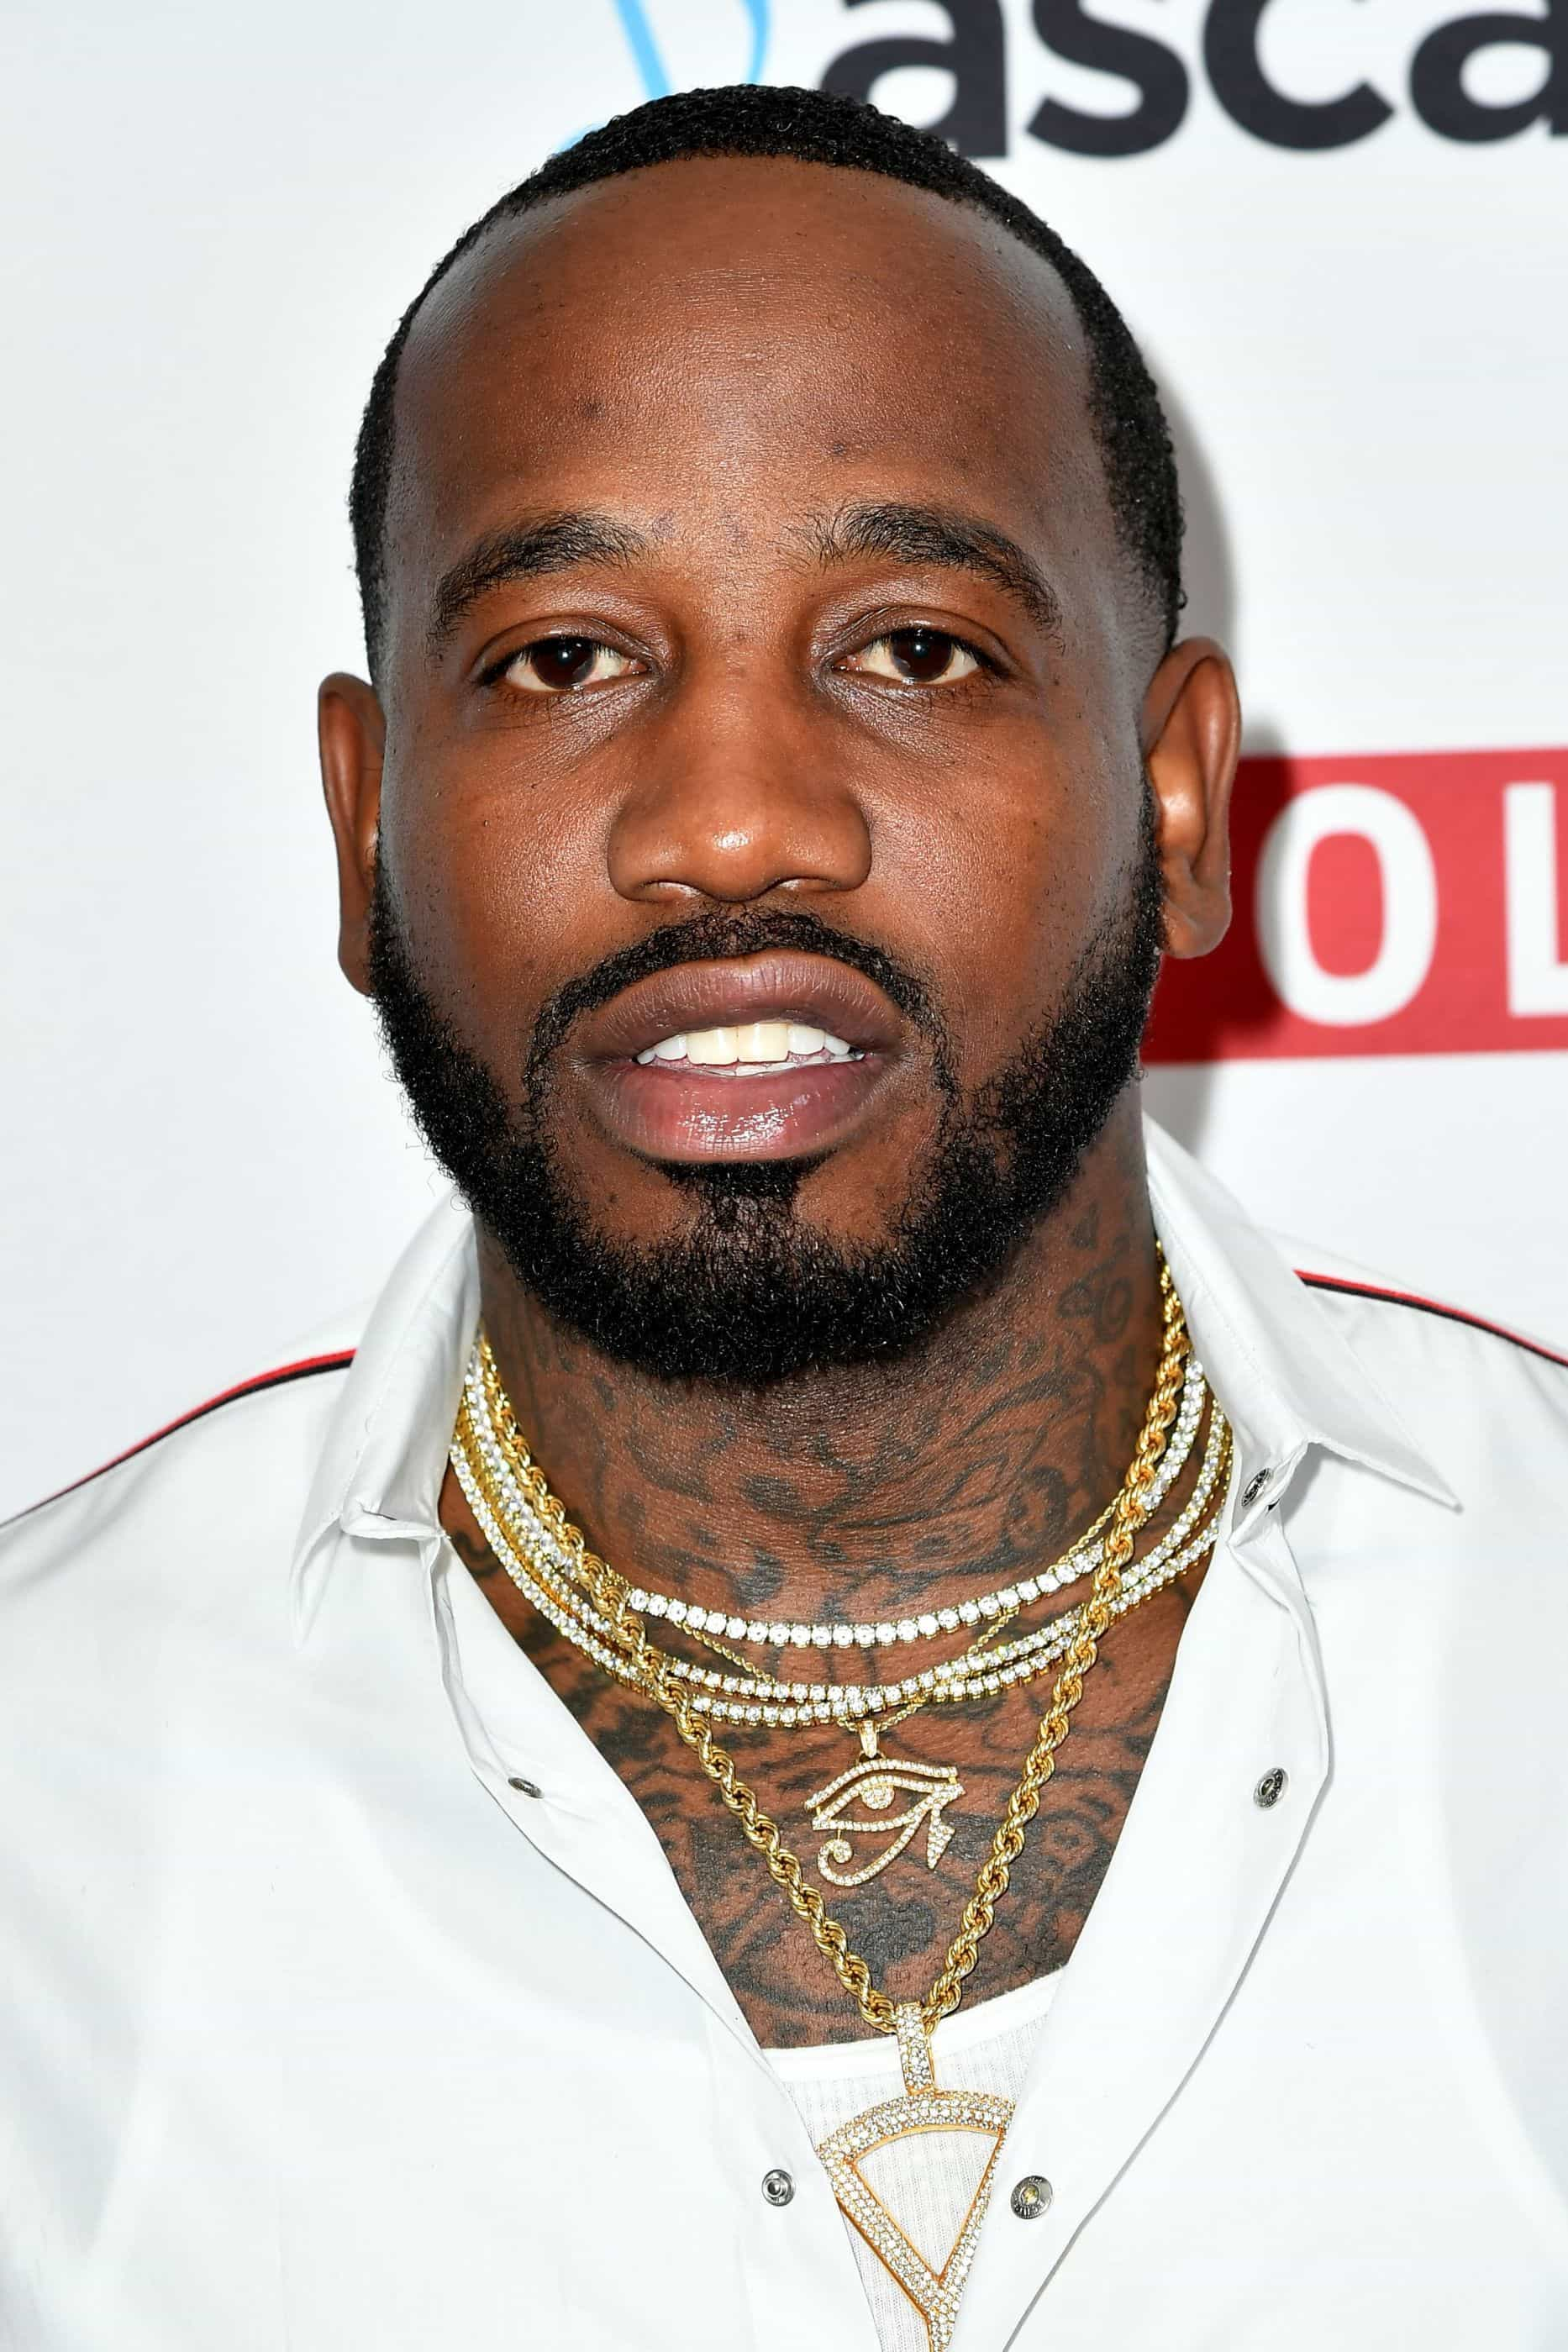 Rapper Young Greatness morto a tiro nos Estados Unidos